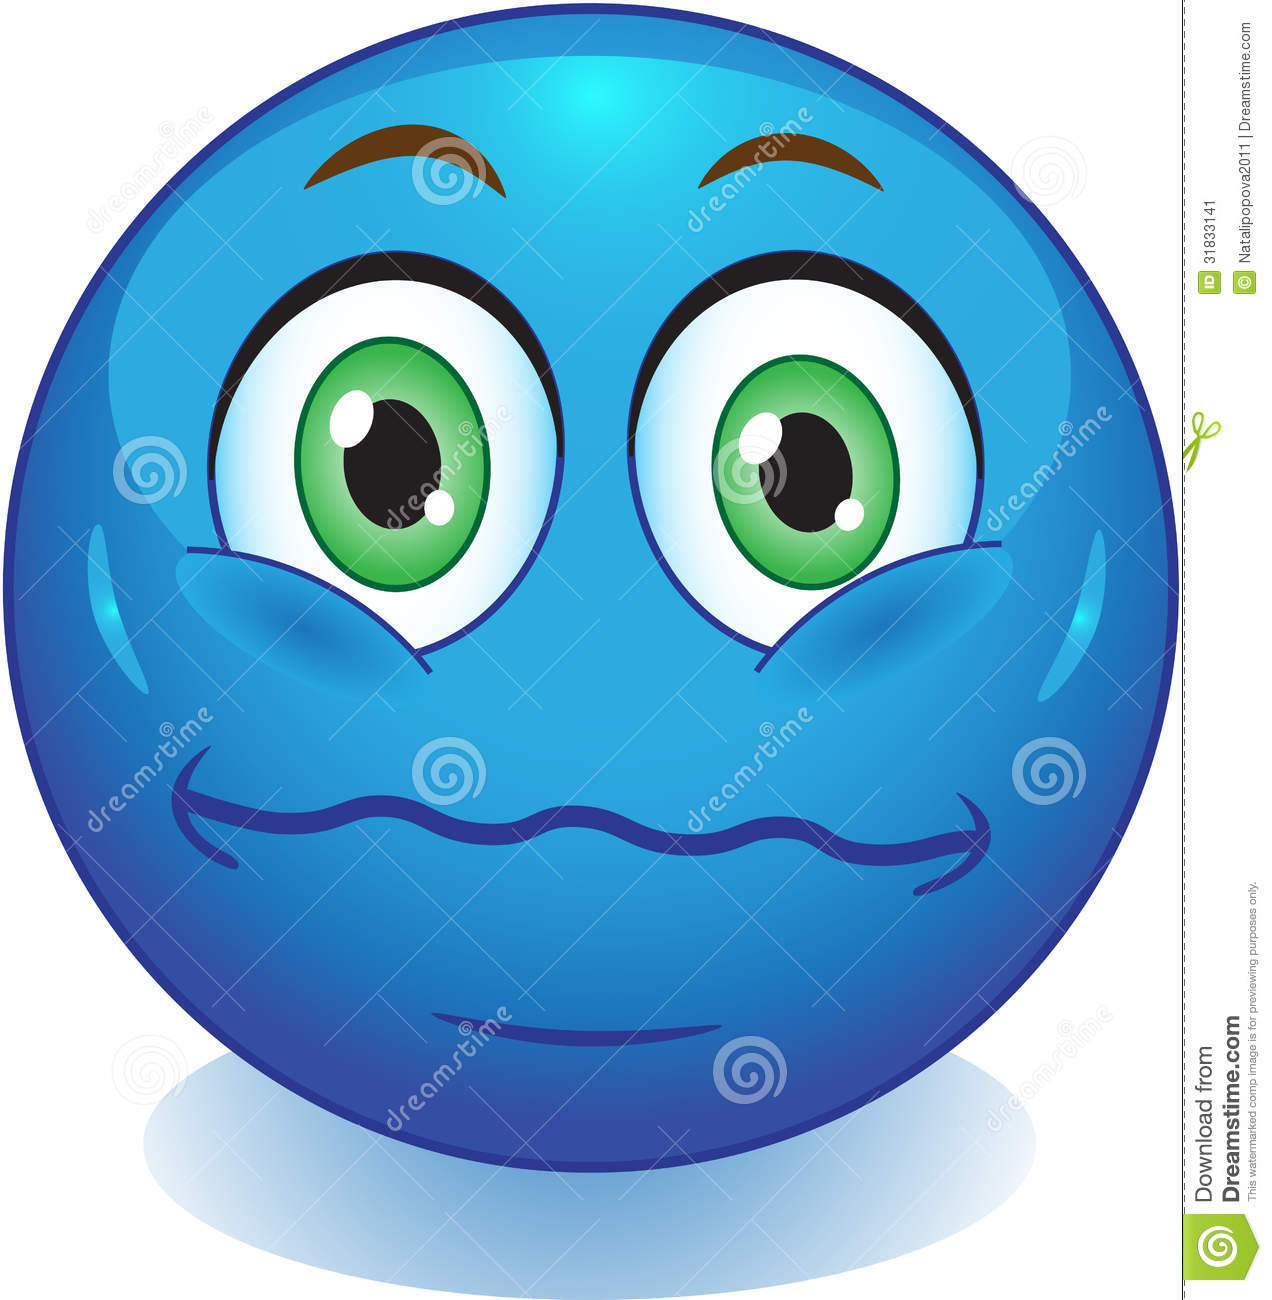 Smiley neutral stock illustration. Image of mood, ball ...